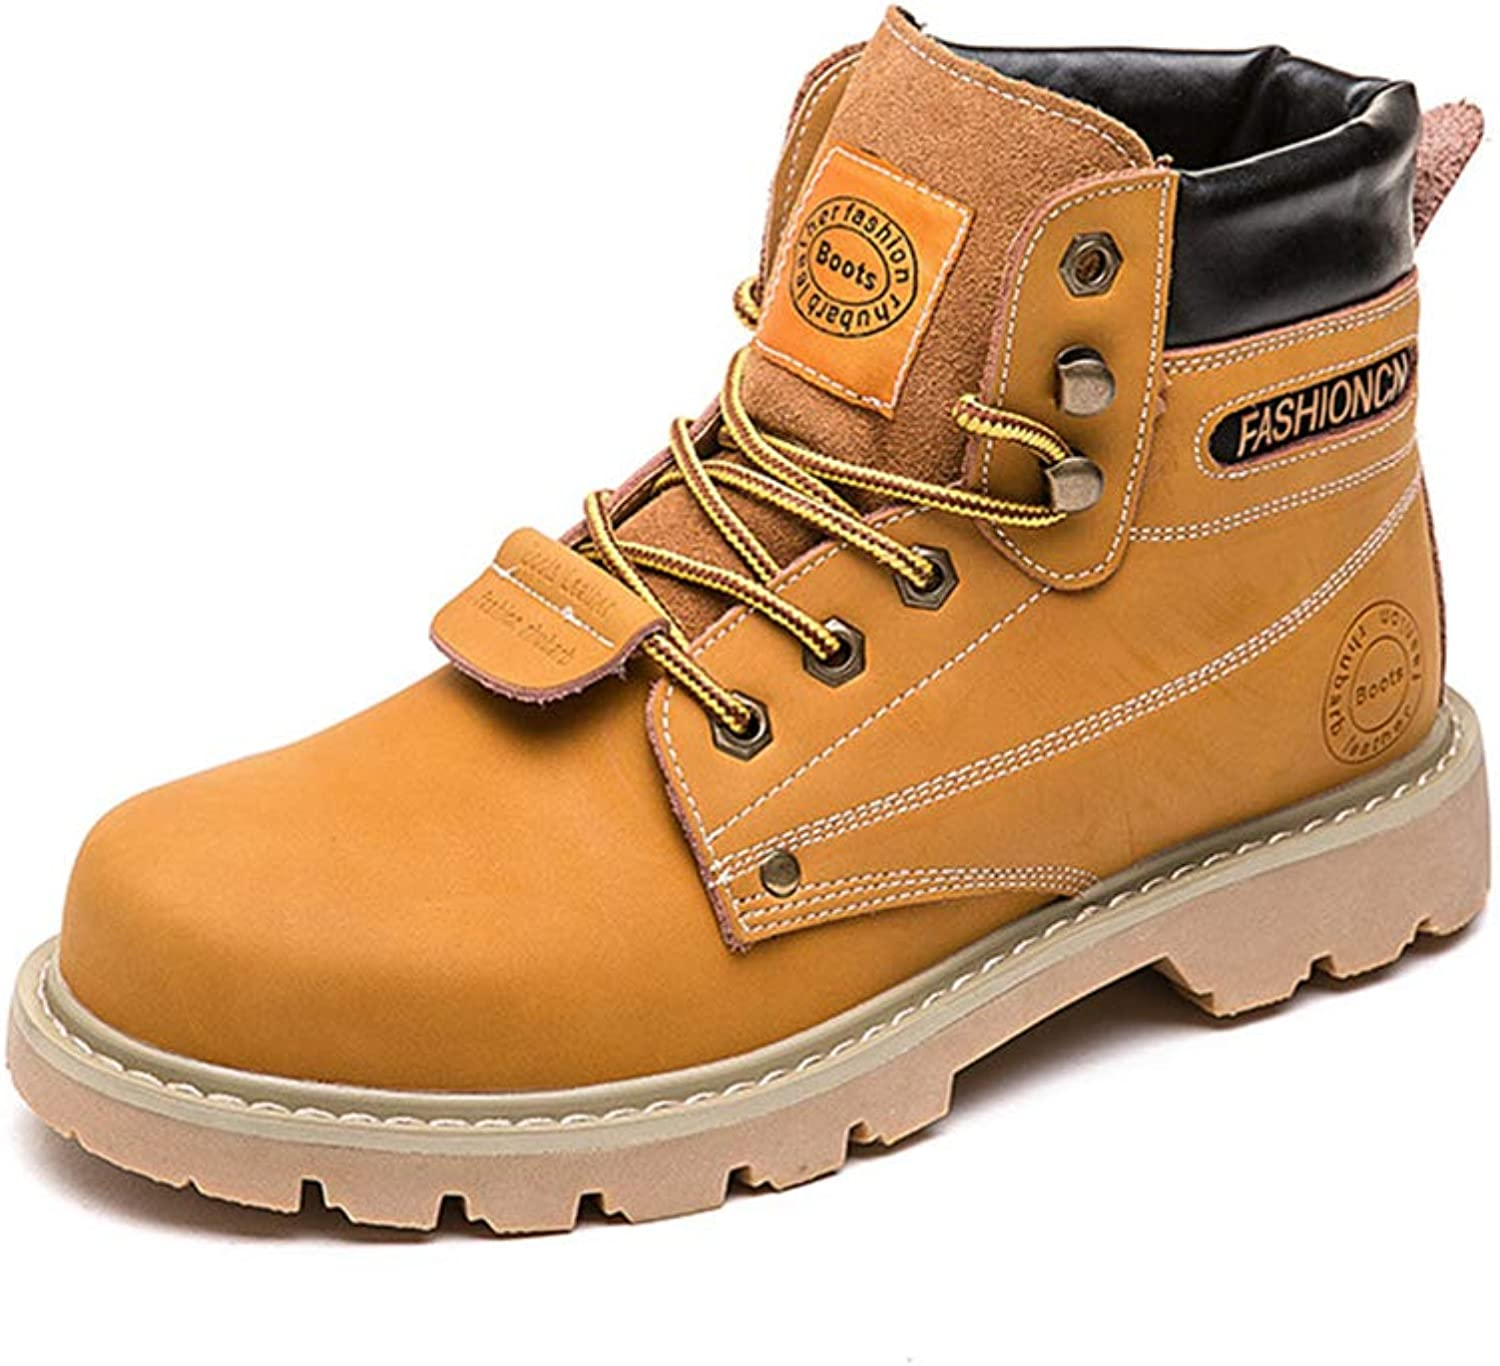 Super color Women's Fashion Leather Lace up Boots Winter shoes Waterproof Wear-Resistant Hiking Boots